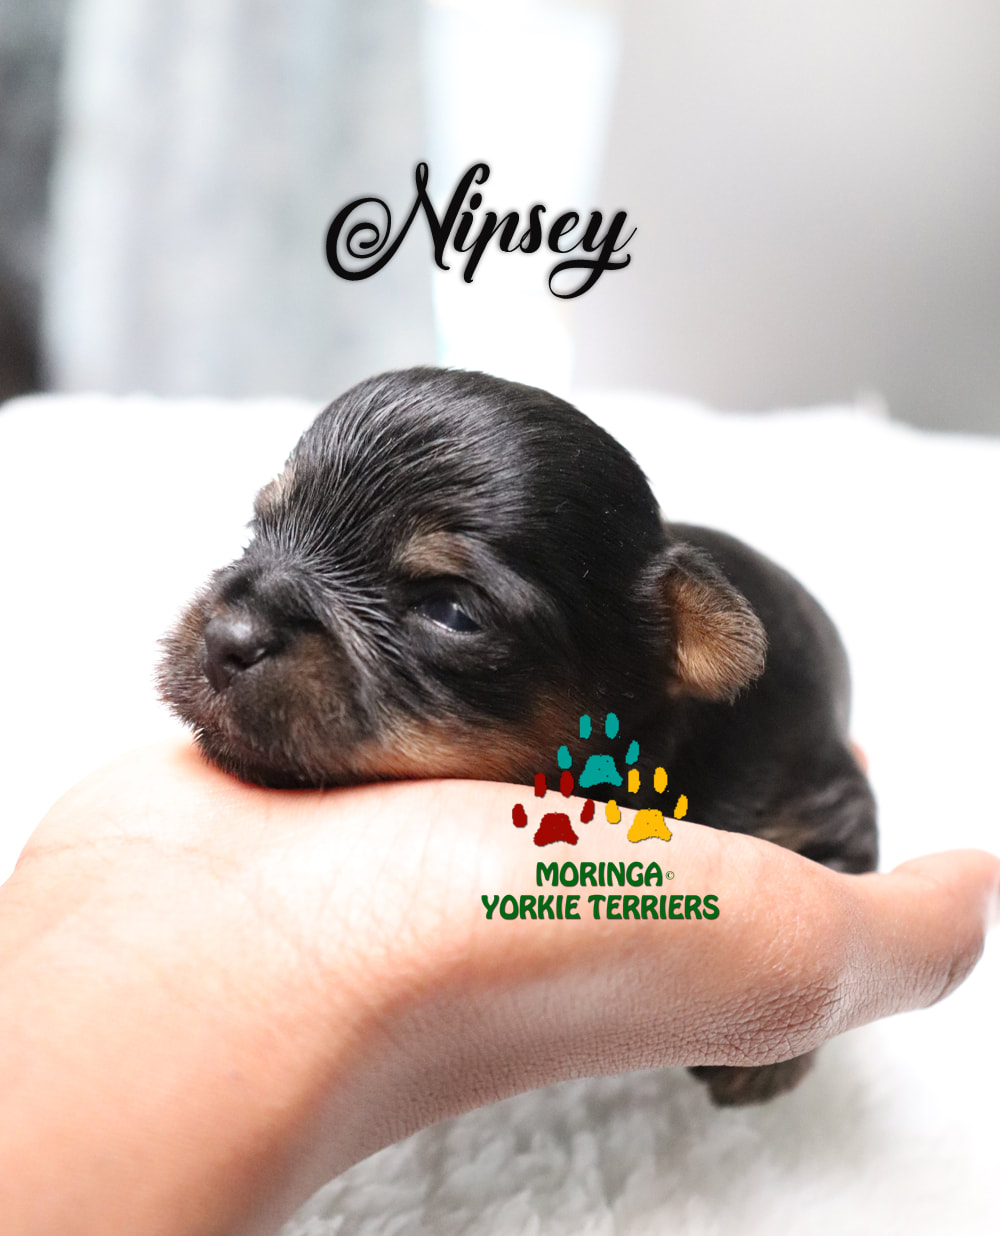 About Yorkies Blog Yorkie Puppies For Sale Quality Tiny Teacup Toy Puppies Yorkies For Sale Southern Califorina Boutique Baby Doll Face Best Yorkie Breeders Usa Moringa For Dogs Mirco Yorkies Colorful Yorkie Terriers Merle Yorkies Pet Financing Usa